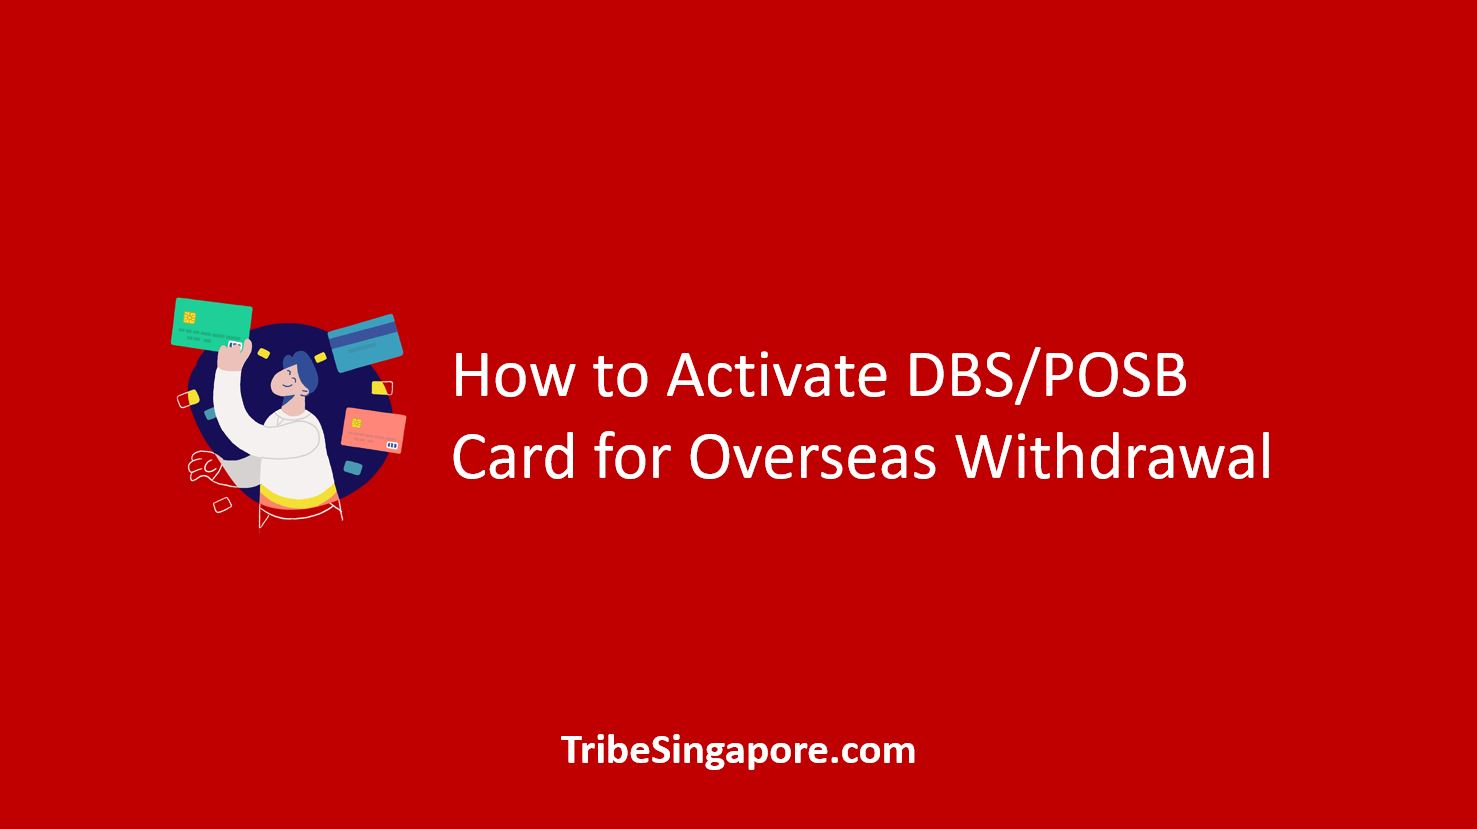 How to Activate DBS/POSB Card for Overseas Withdrawal